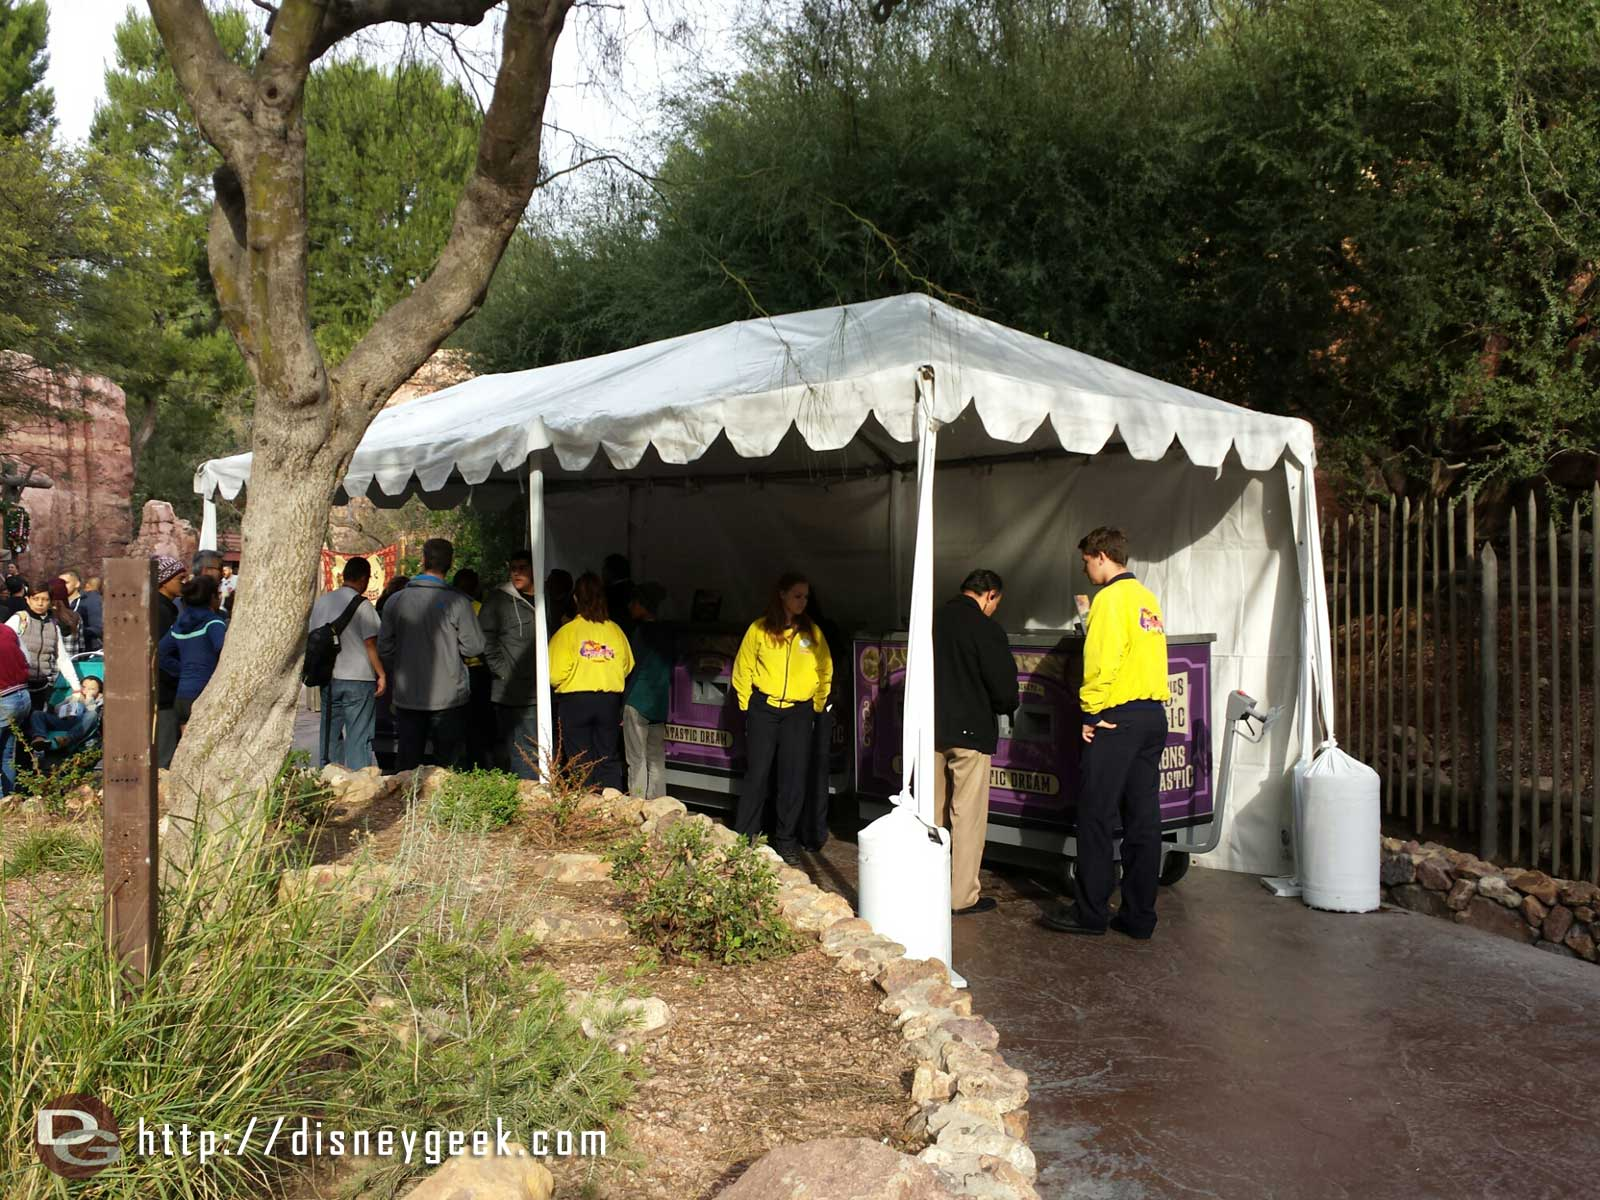 Fantasmic FasPass distribution is from carts under these temporary tents.  Currently for blue @ 10:45 show